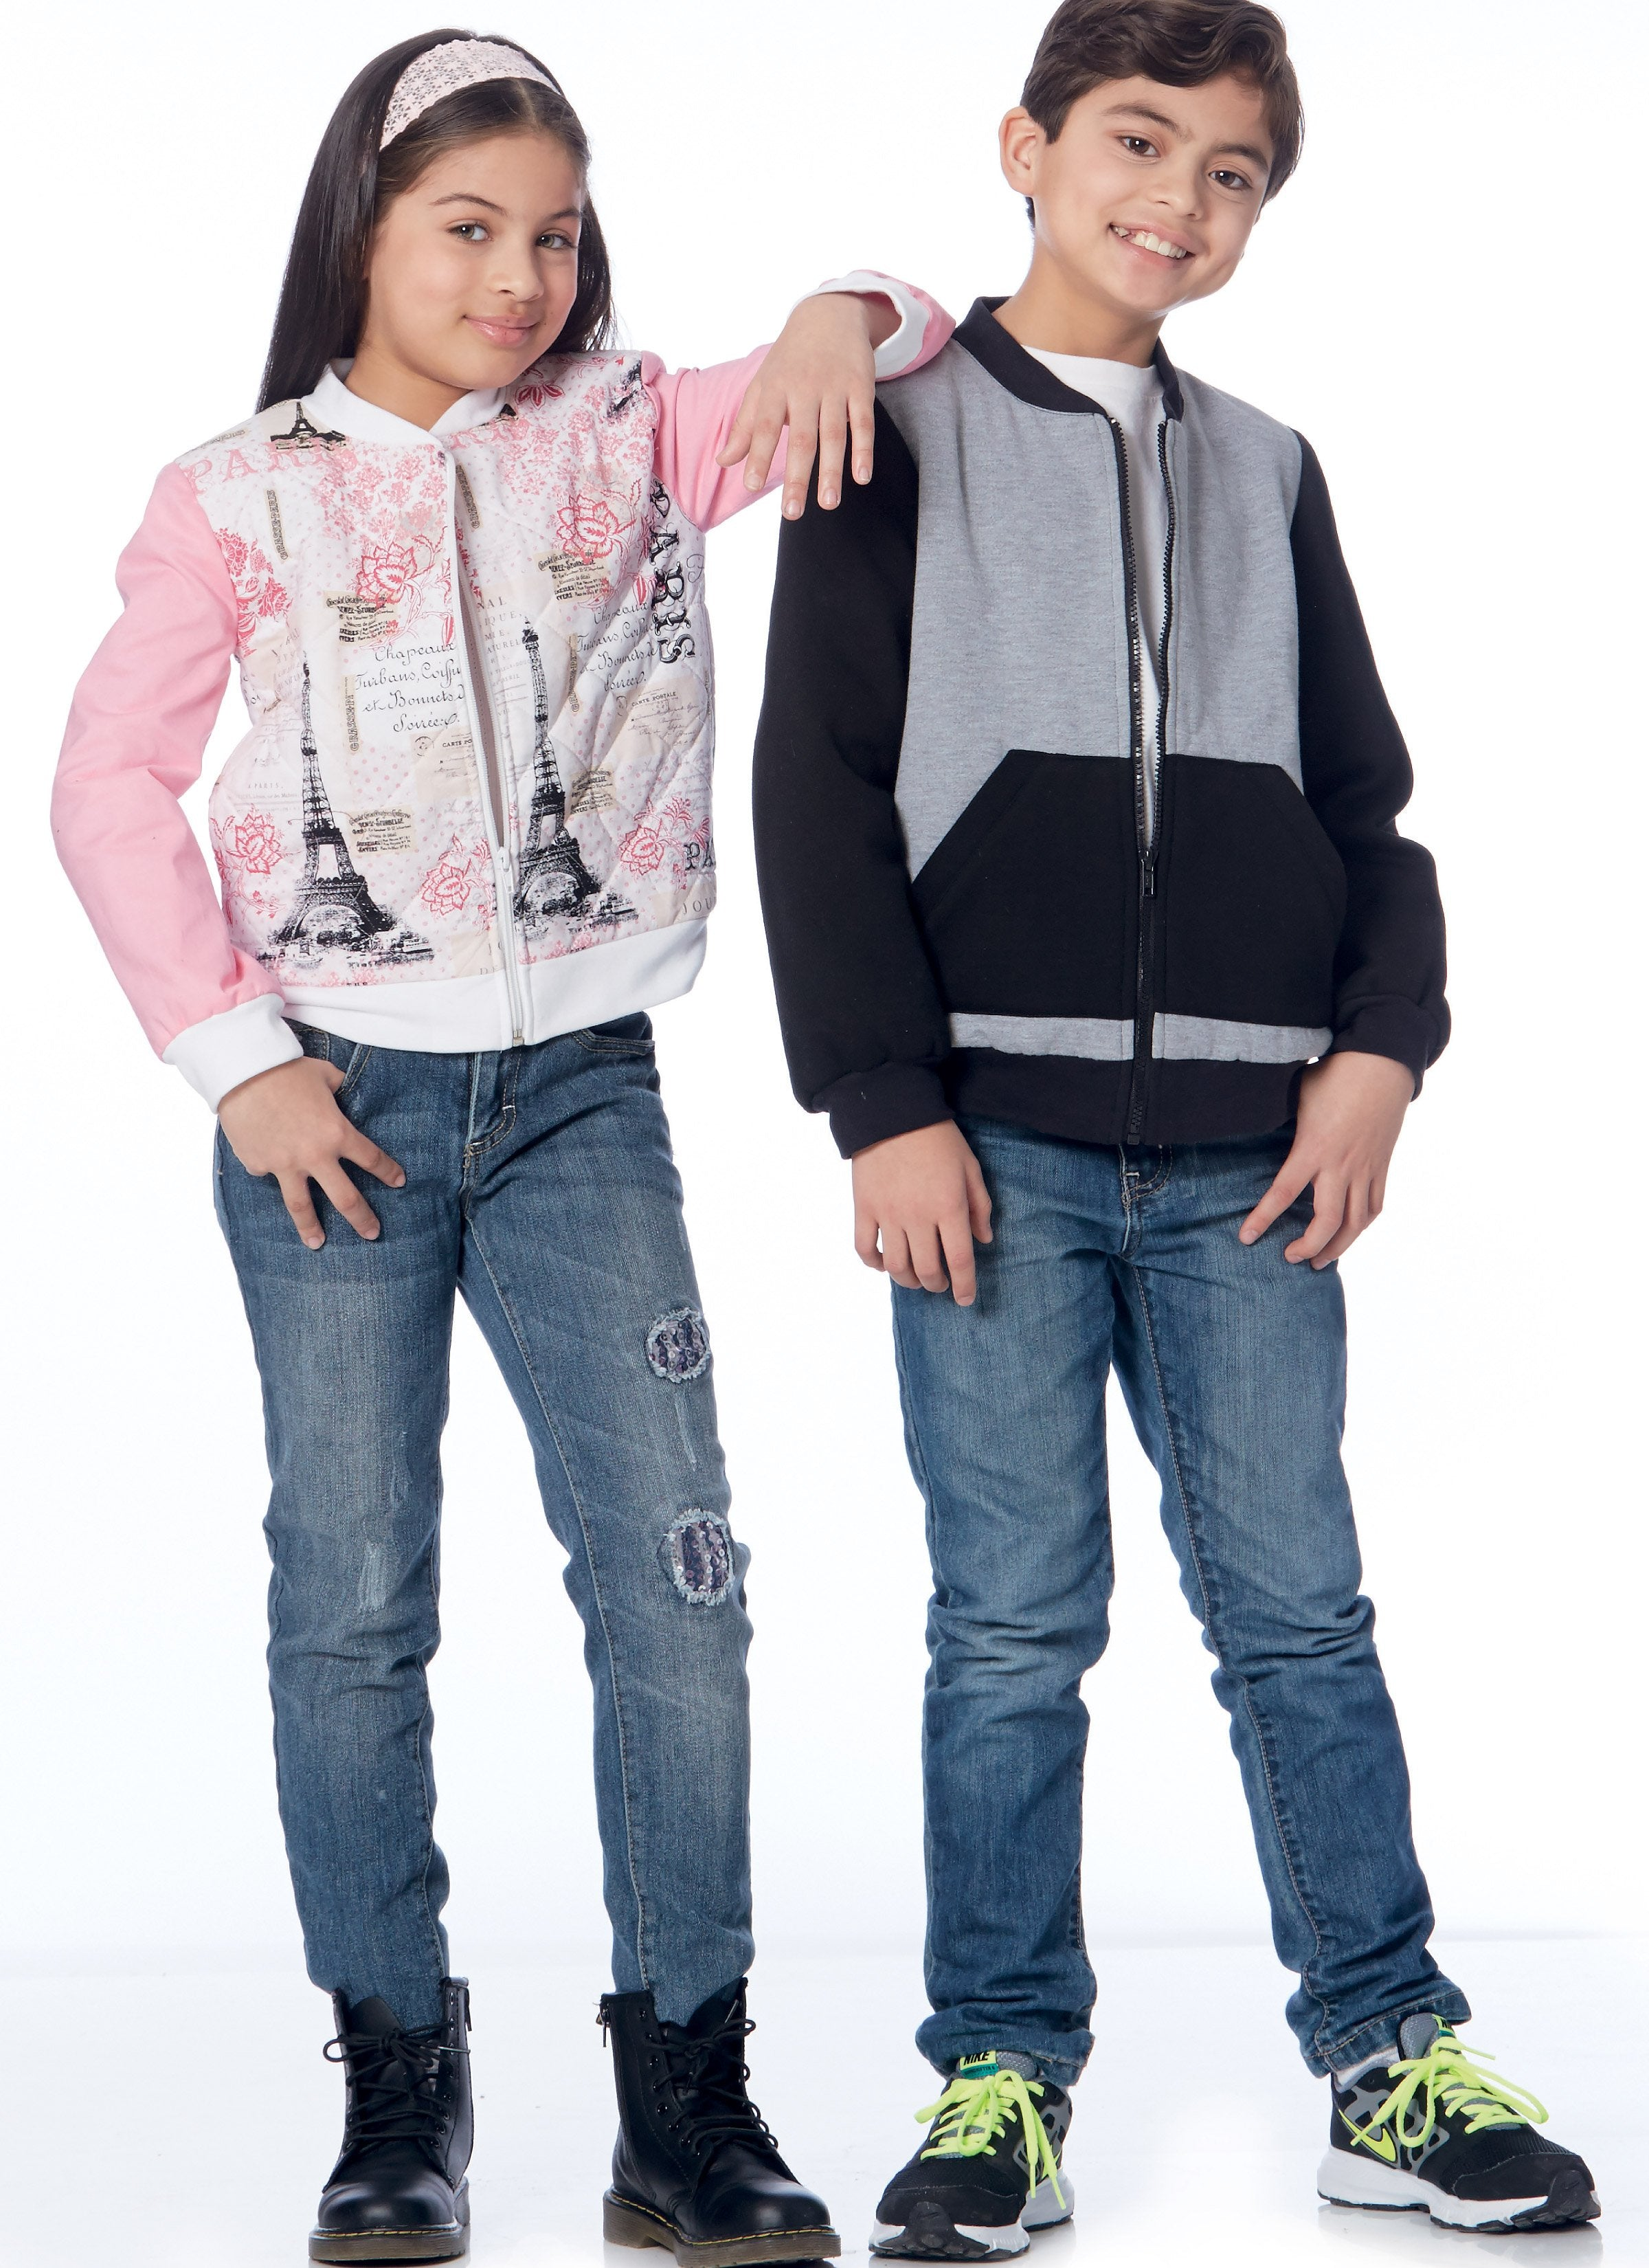 M7619 Girls' / Boys' Bomber Jackets